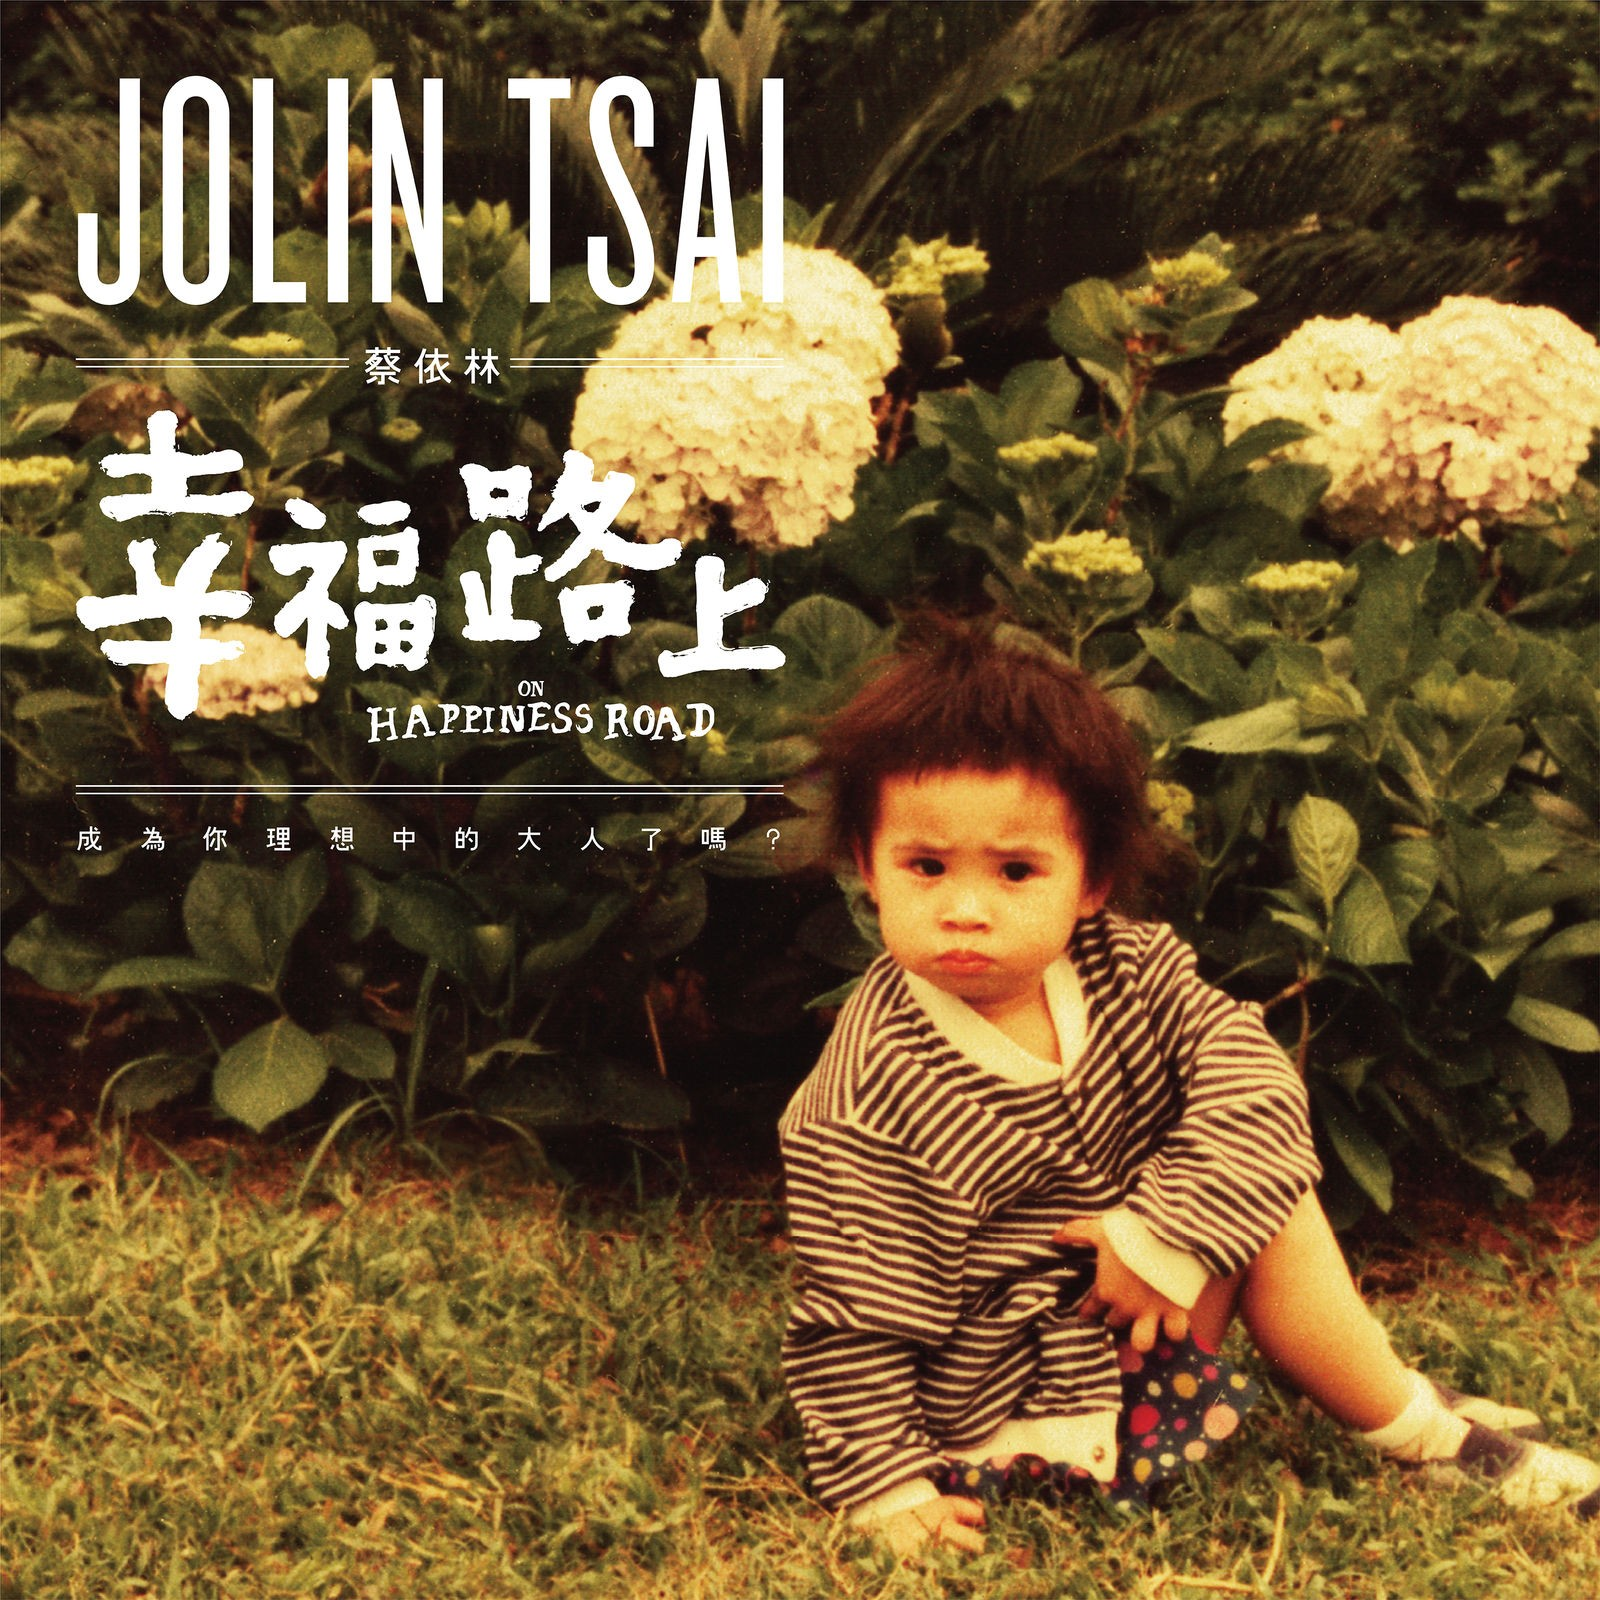 Jolin Tsai (蔡依林) – On Happiness Road (幸褔路上) [FLAC + MP3 320 / WEB] [2017.11.20]